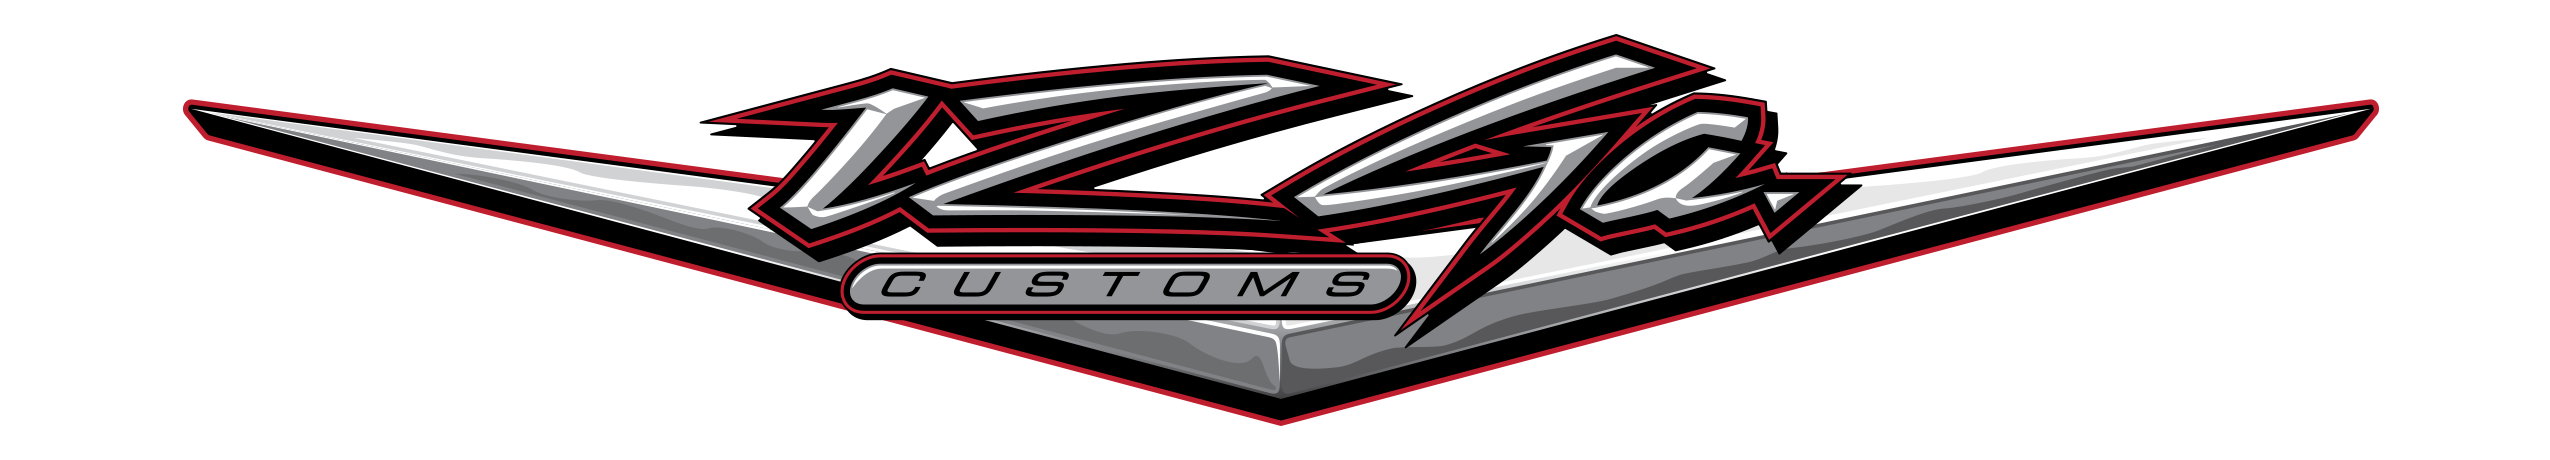 12 Ga. Customs Logo